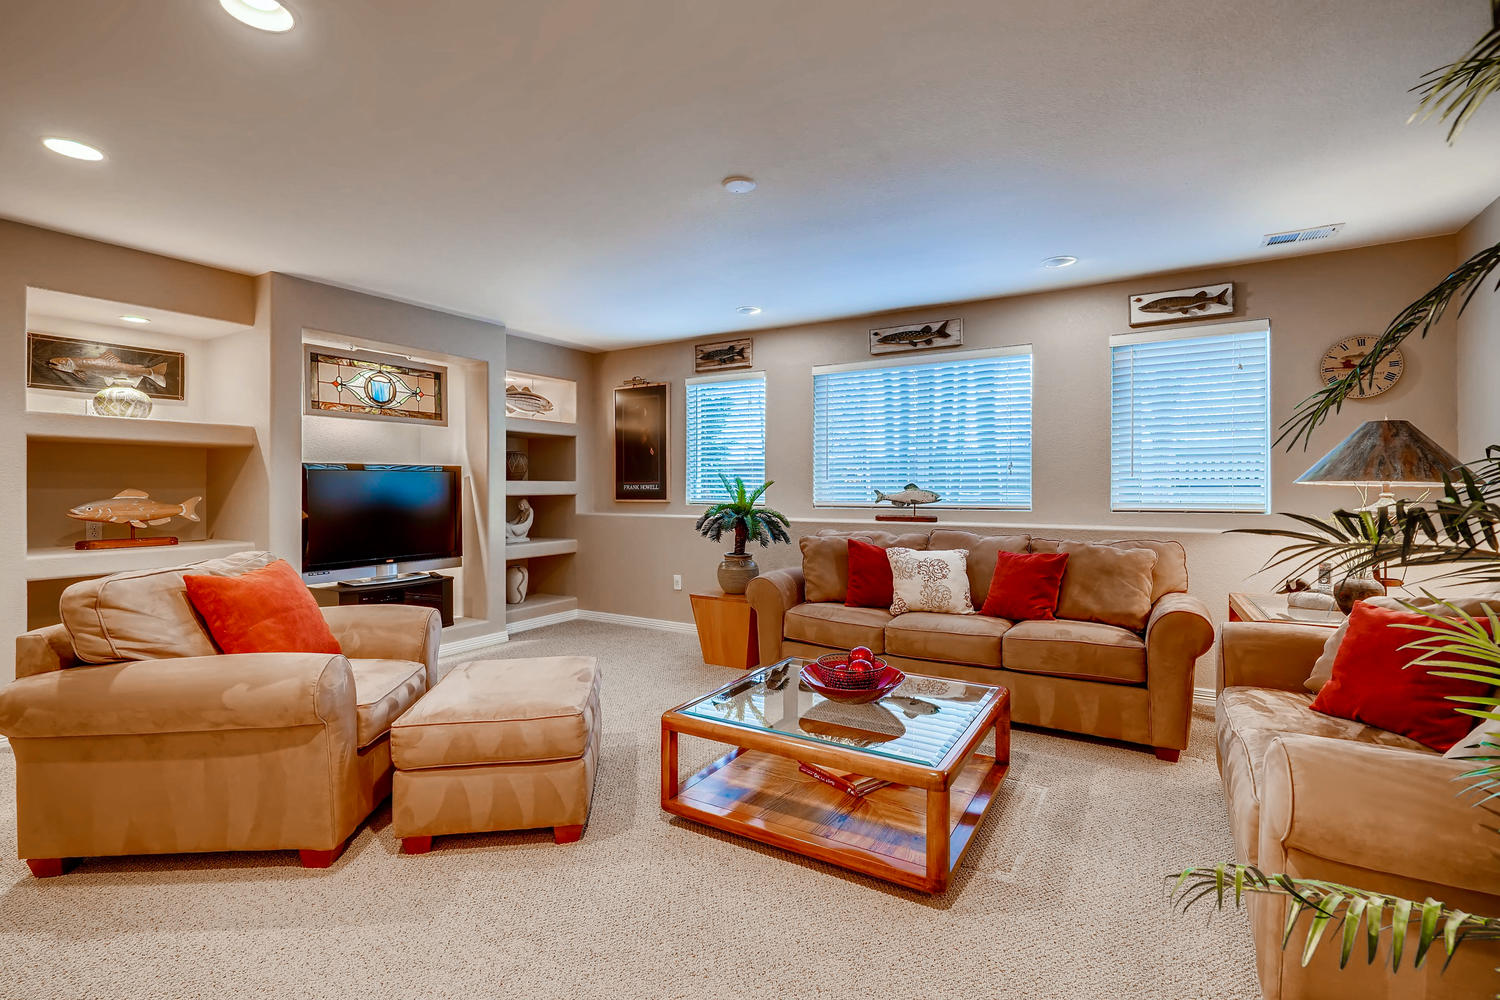 NEW LISTING 5675 S Depew Circle Littleton Basement Family Room